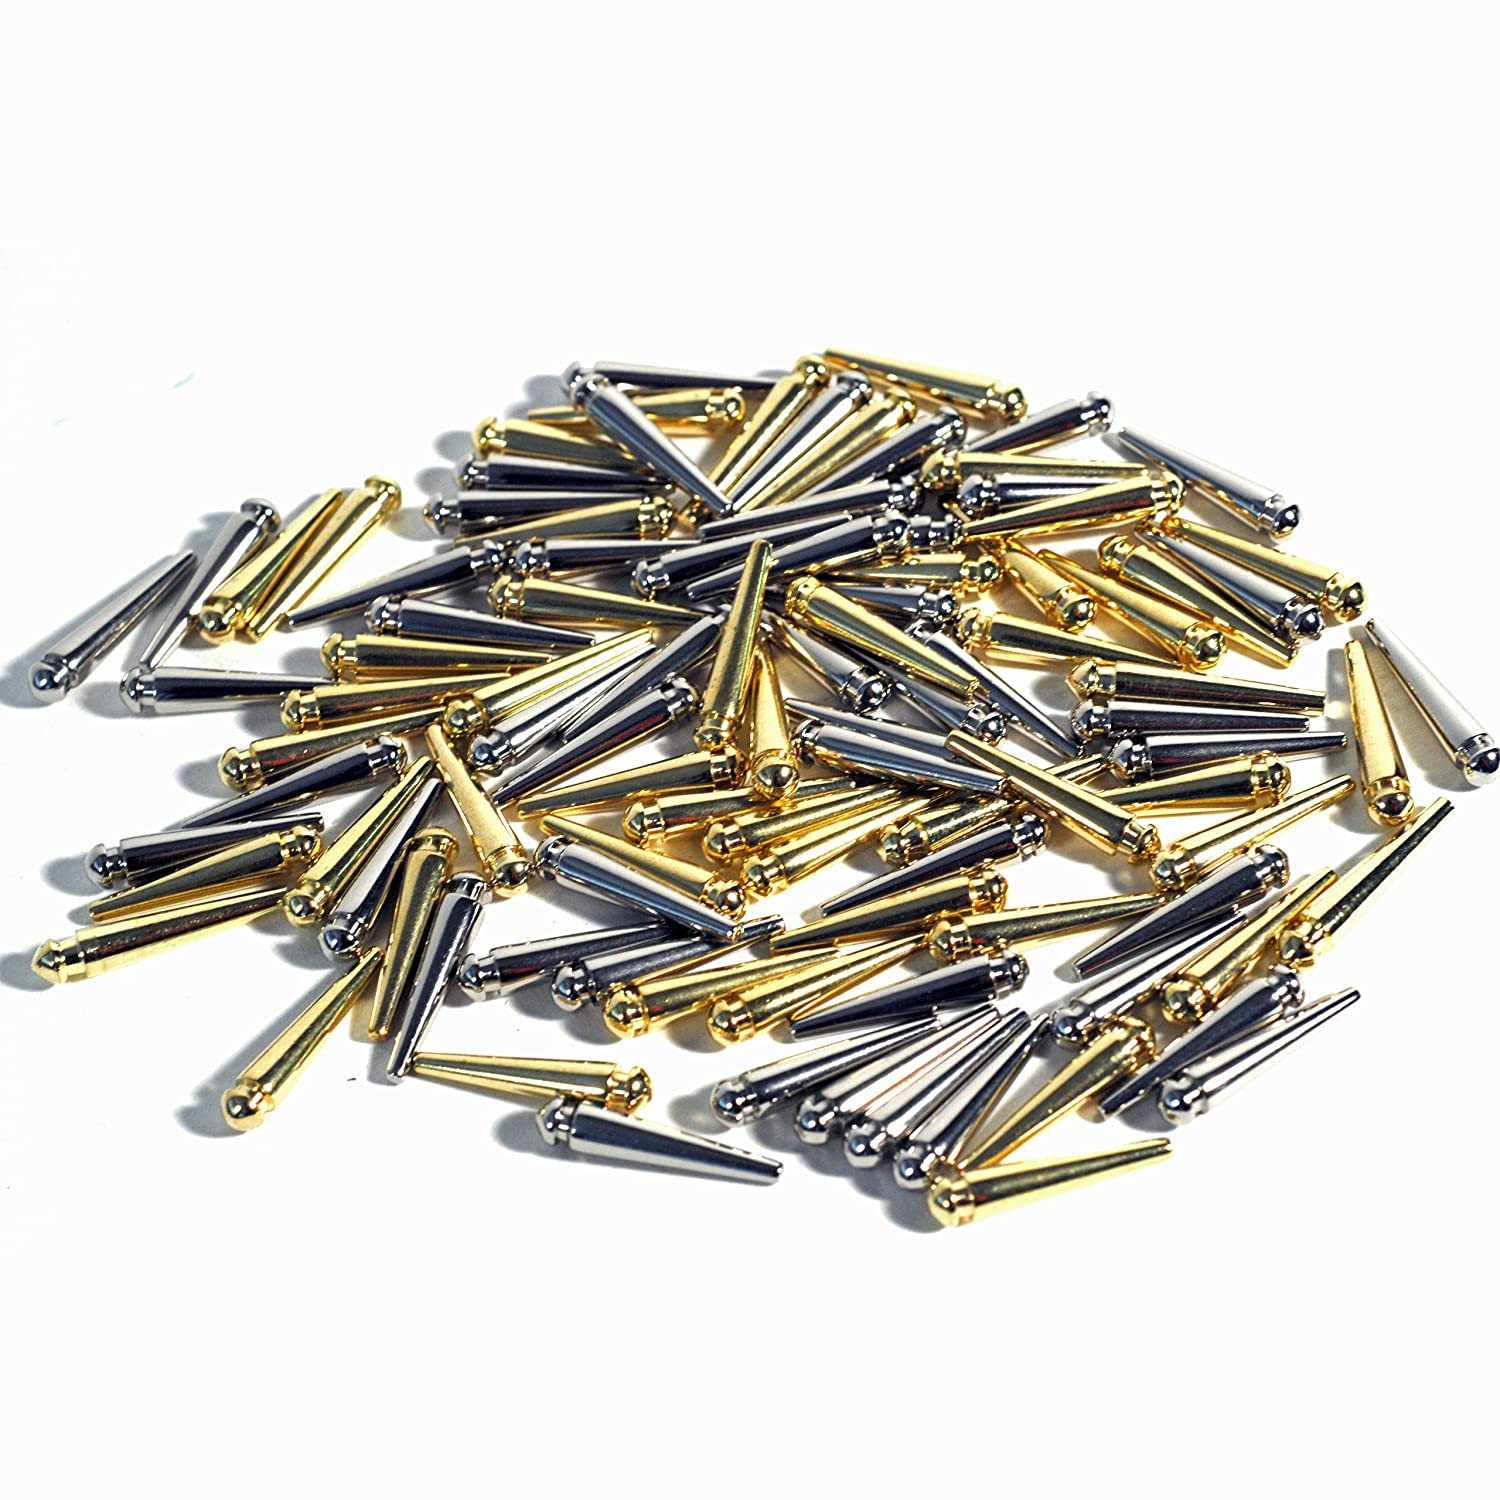 WE Games Premium Easy Grip Cribbage Pegs with a Tapered Design - Set of 100 (50 gold & 50 silver) B000JMCNM2